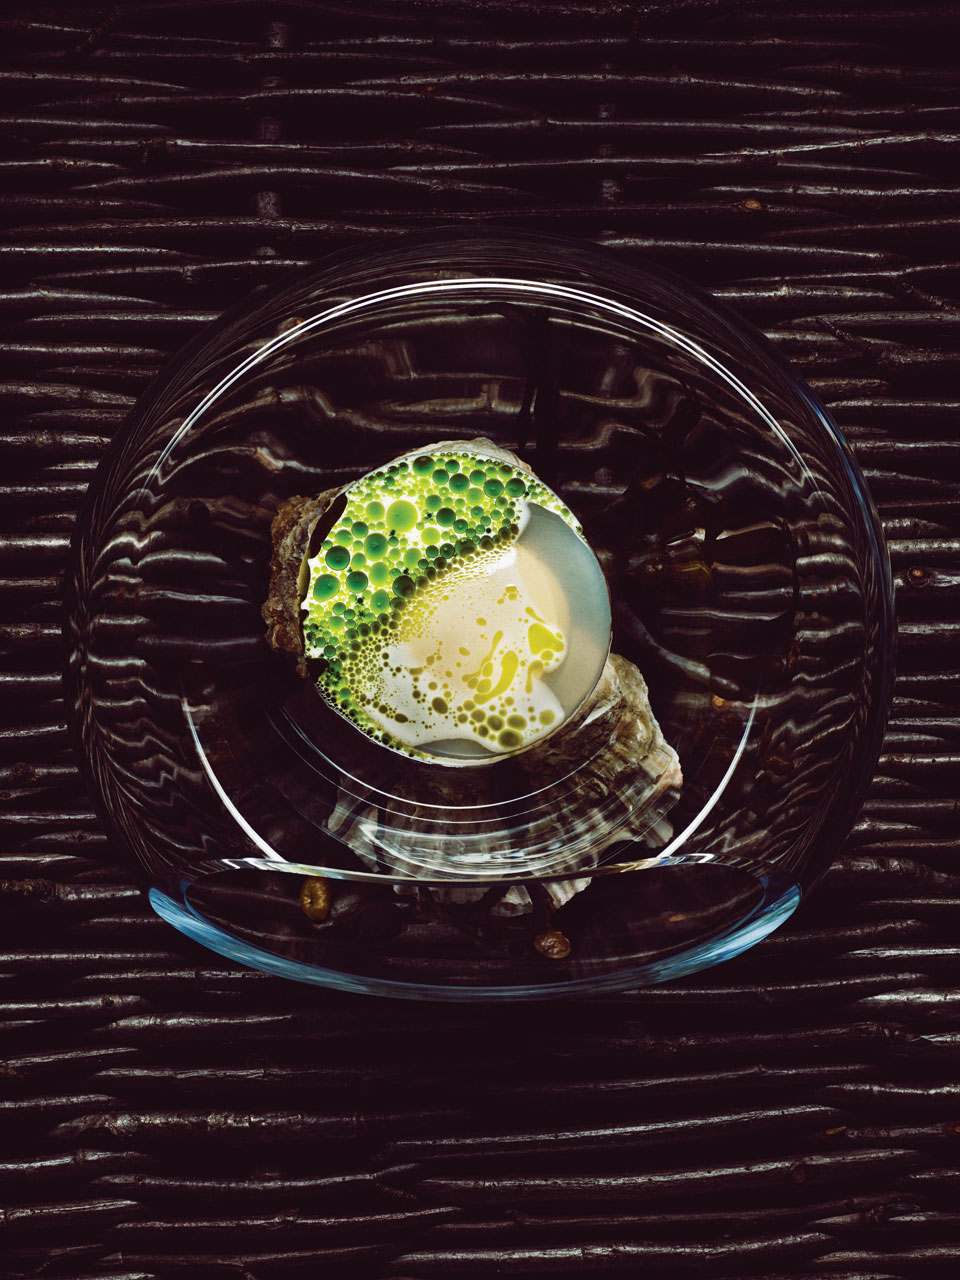 Norwegian oyster with a gel of blue mussel and oyster juice served with a warm sauce of mussel and dill essence.Photography by Tuukka Koski